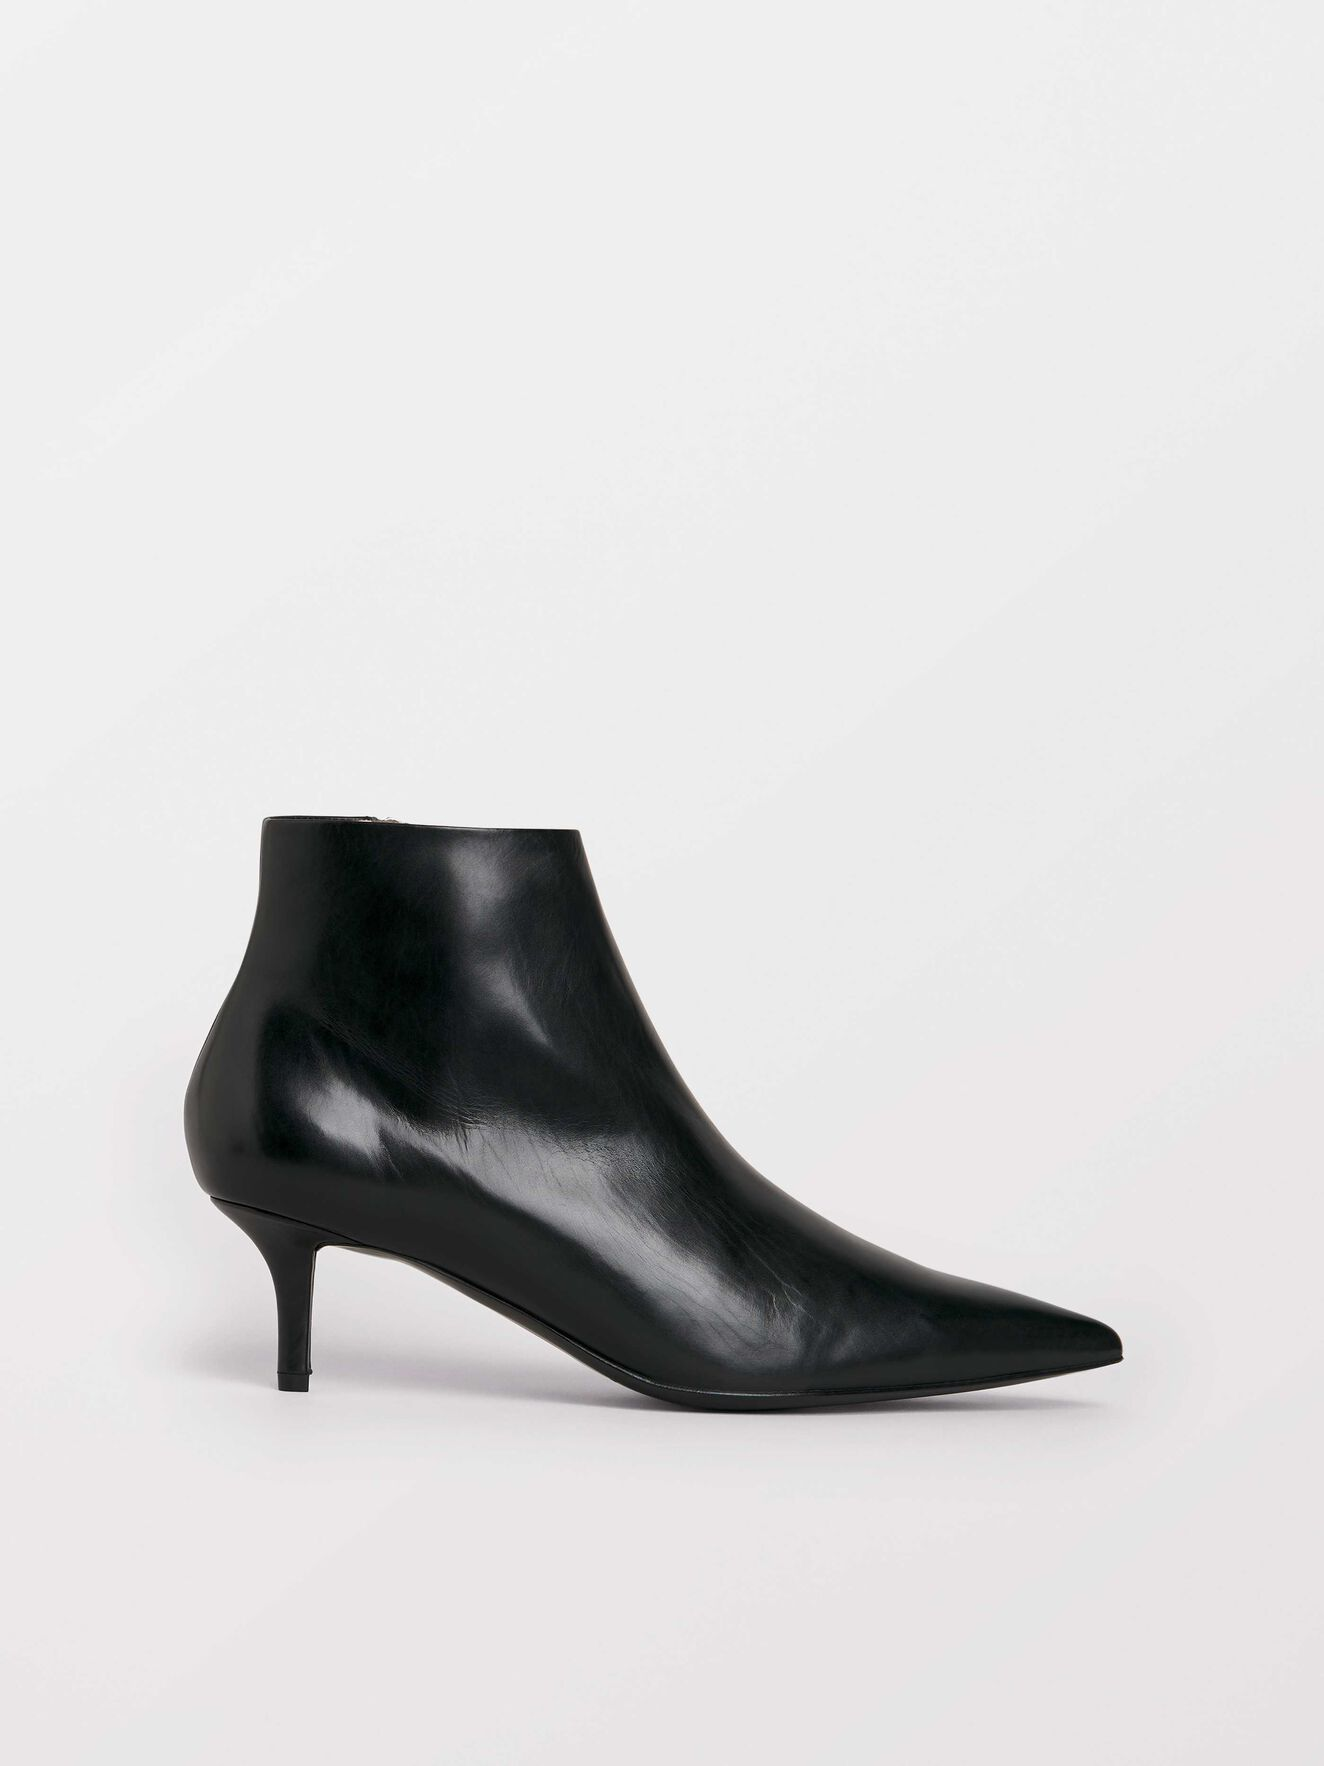 Fuscus C Boots in Black from Tiger of Sweden